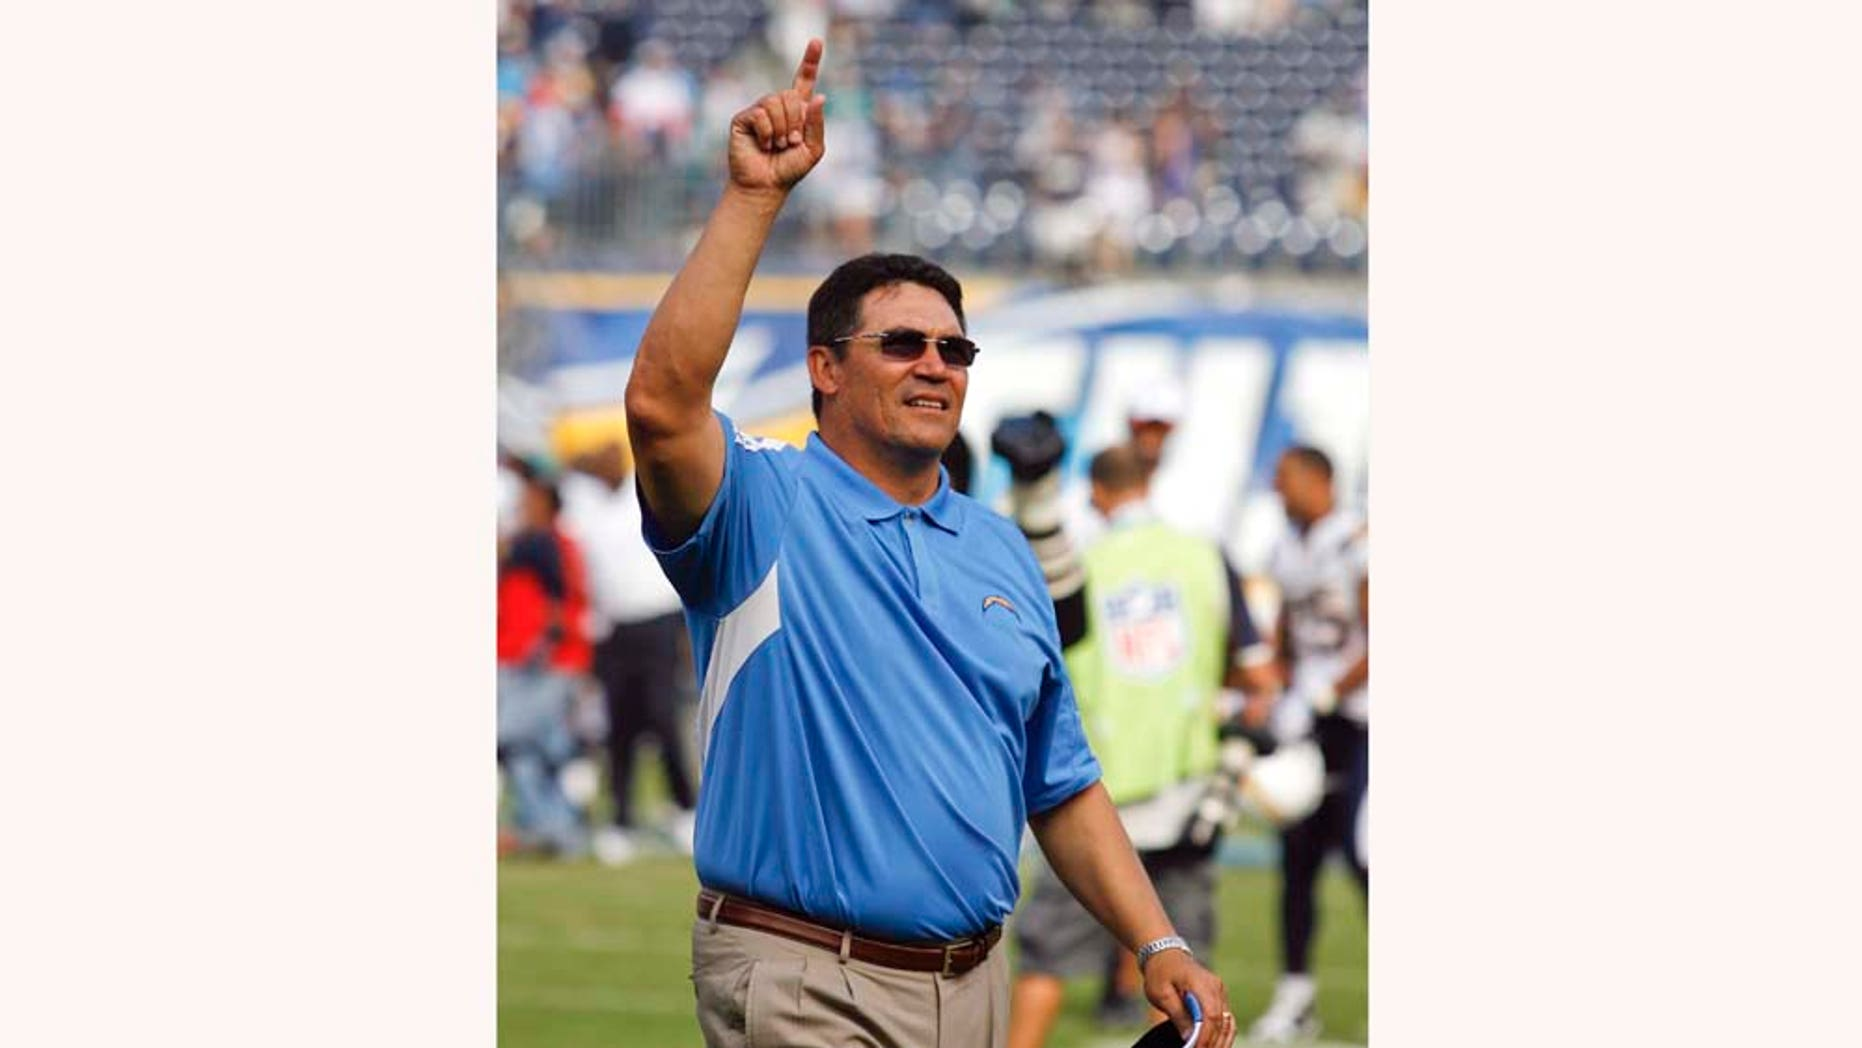 San Diego Chargers defensive coordinator Ron Rivera after an NFL  football game against the Miami Dolphins Sunday, Sept. 27, 2009 in San Diego.  (AP Photo/Denis Poroy)